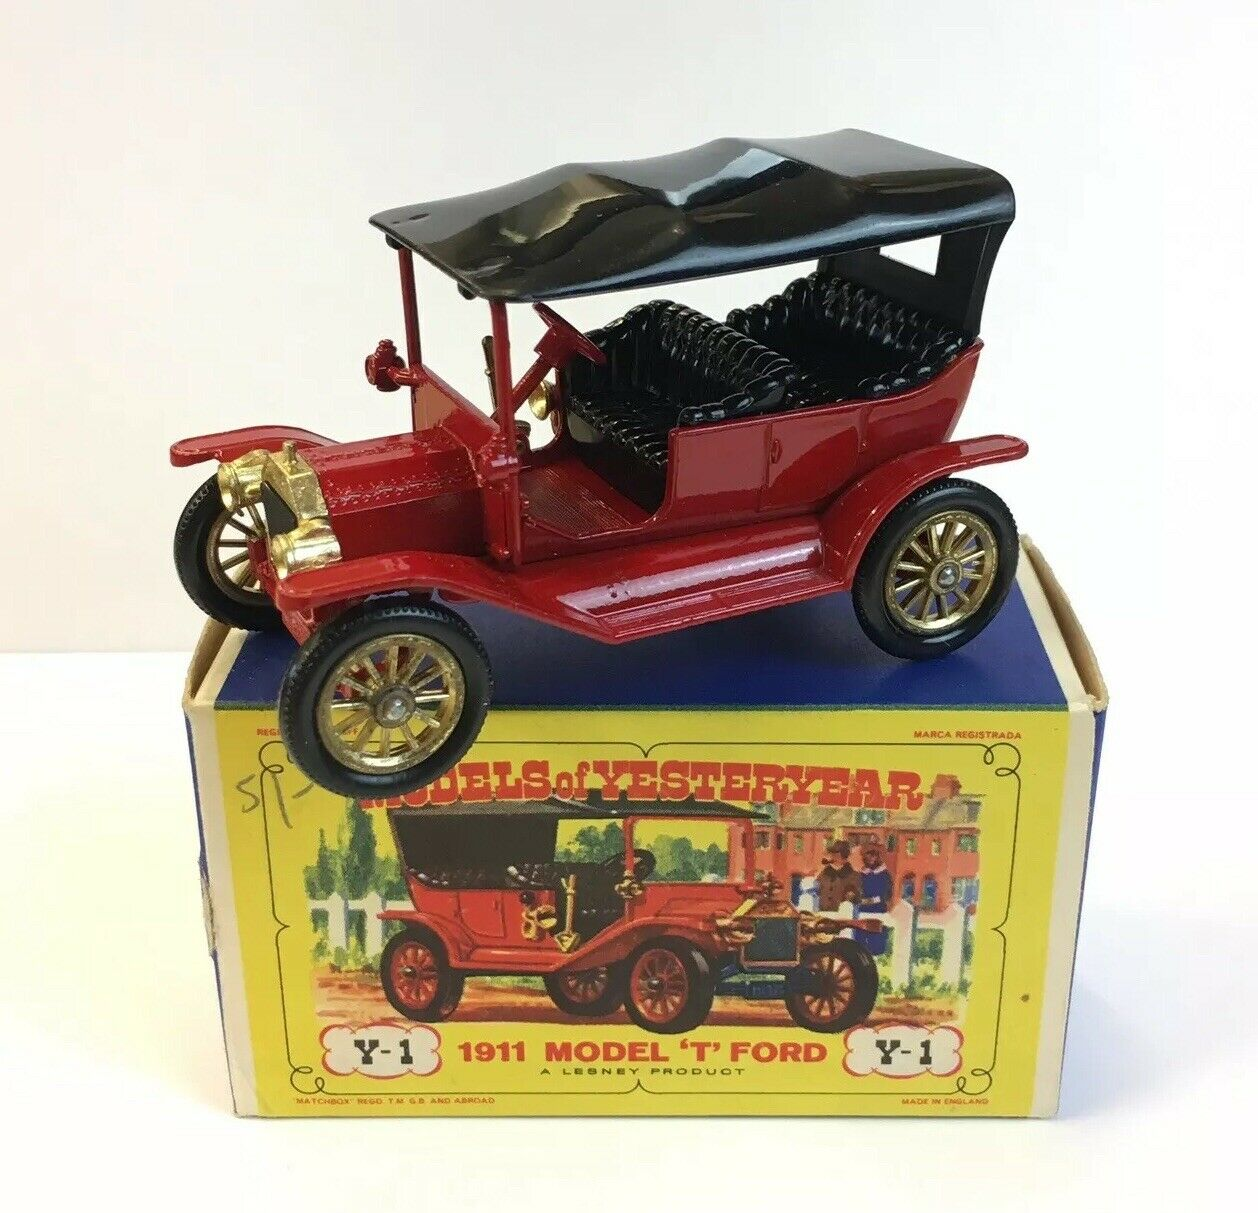 MATCHBOX MODELS OF YESTERYEAR 1911 model  T  Ford Y-1 boxed 7.5 cm de longueur